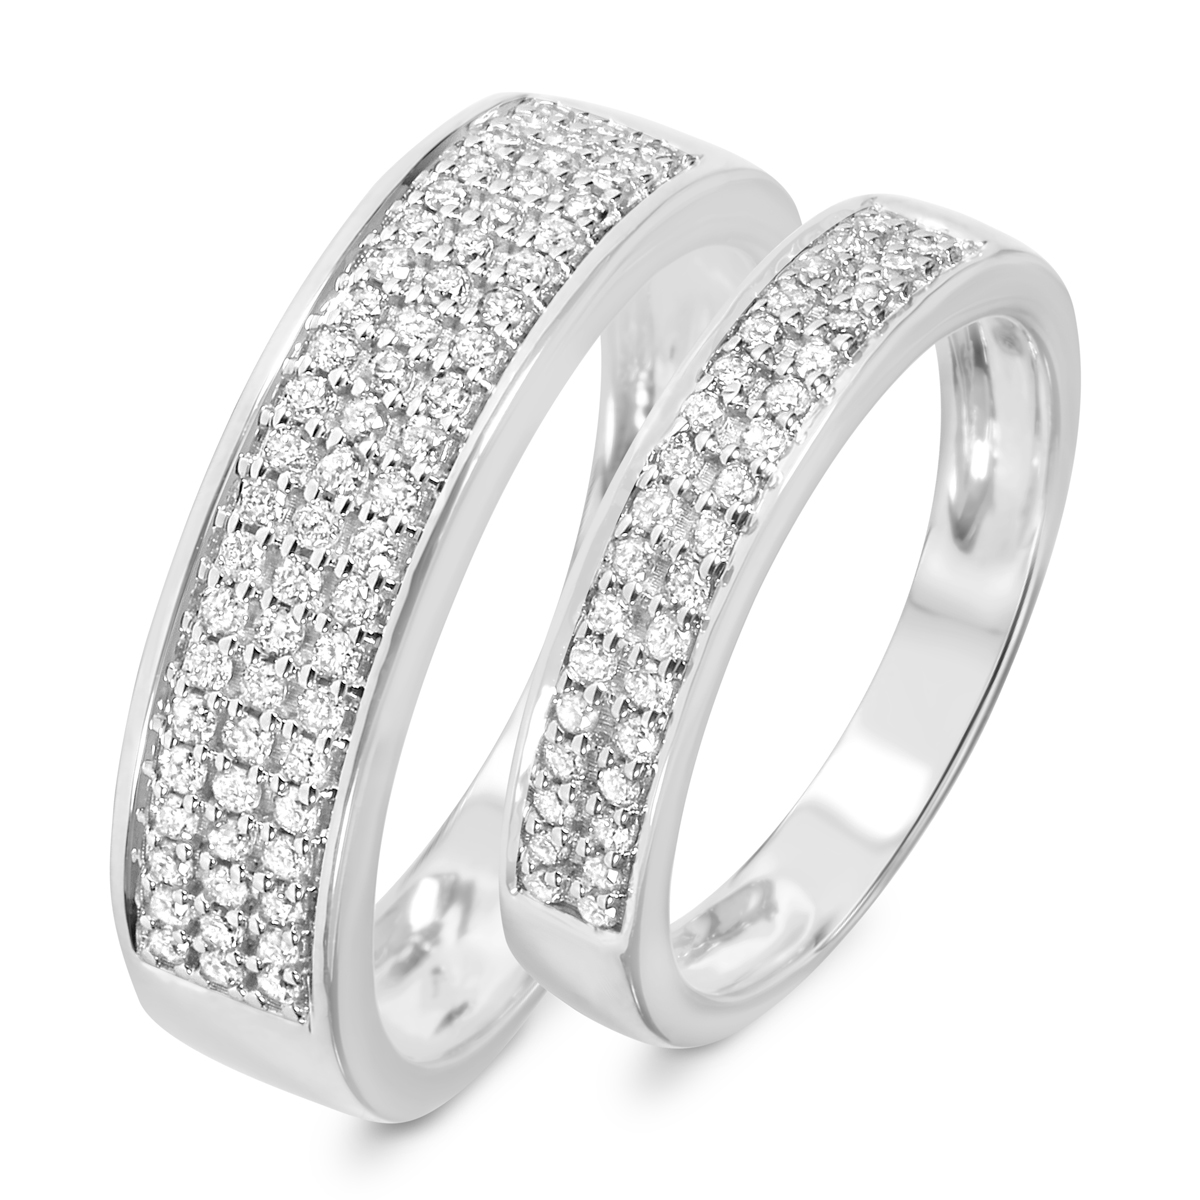 style wb169w10k With his and hers white gold wedding rings